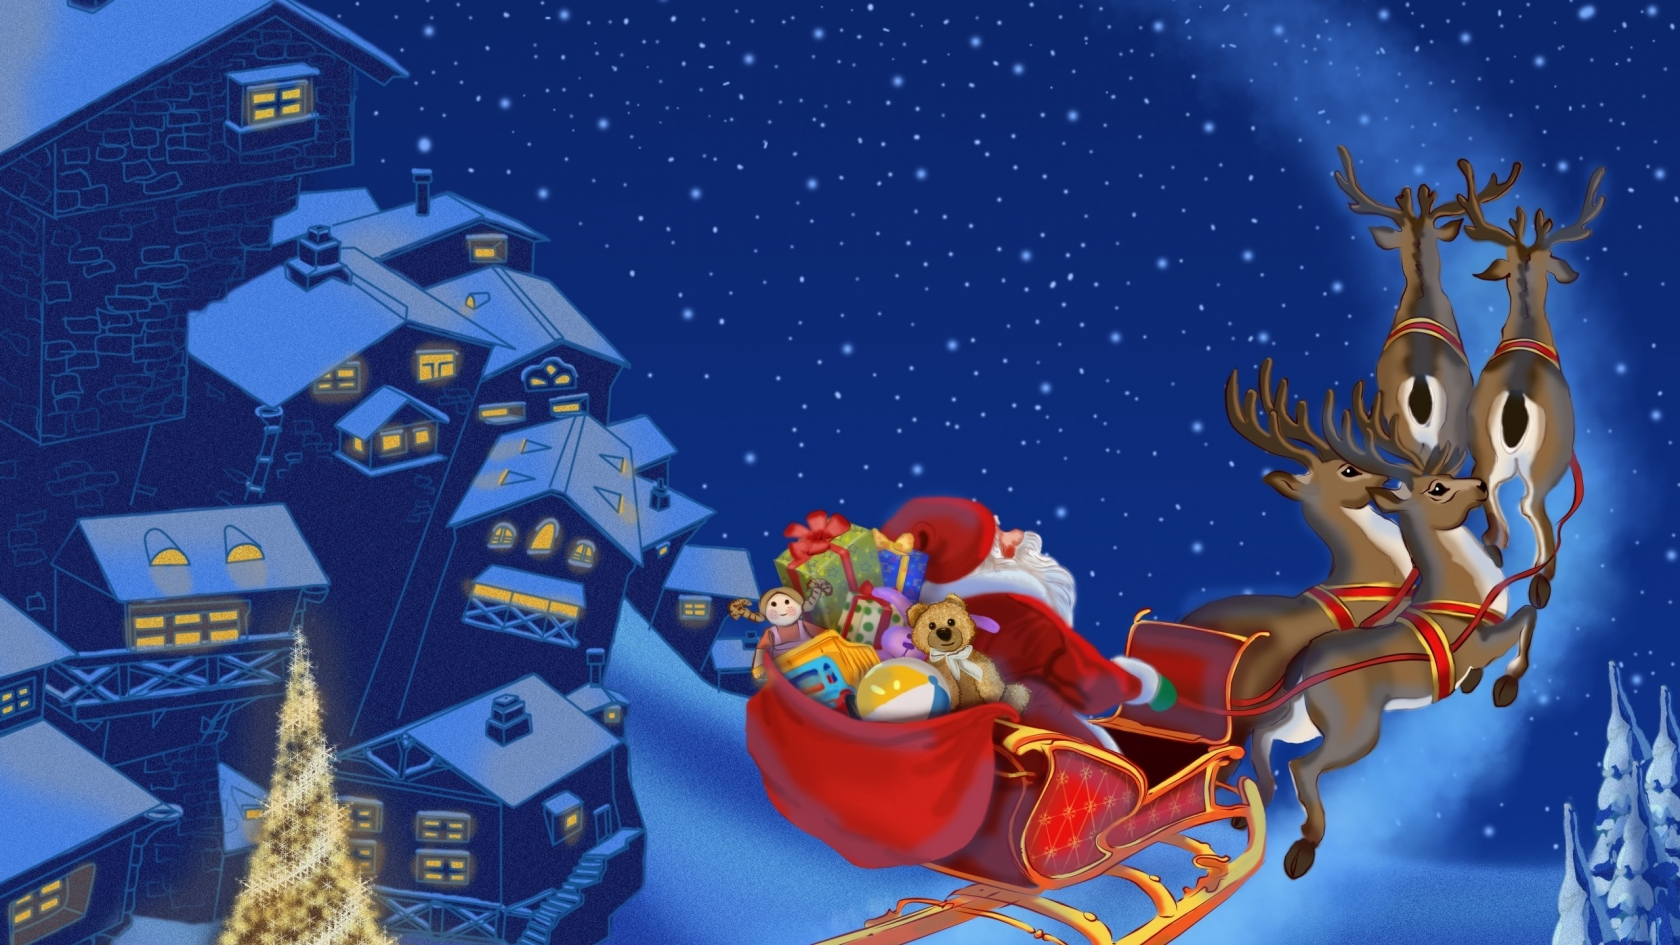 Santa Clause Flying for 1680 x 945 HDTV resolution